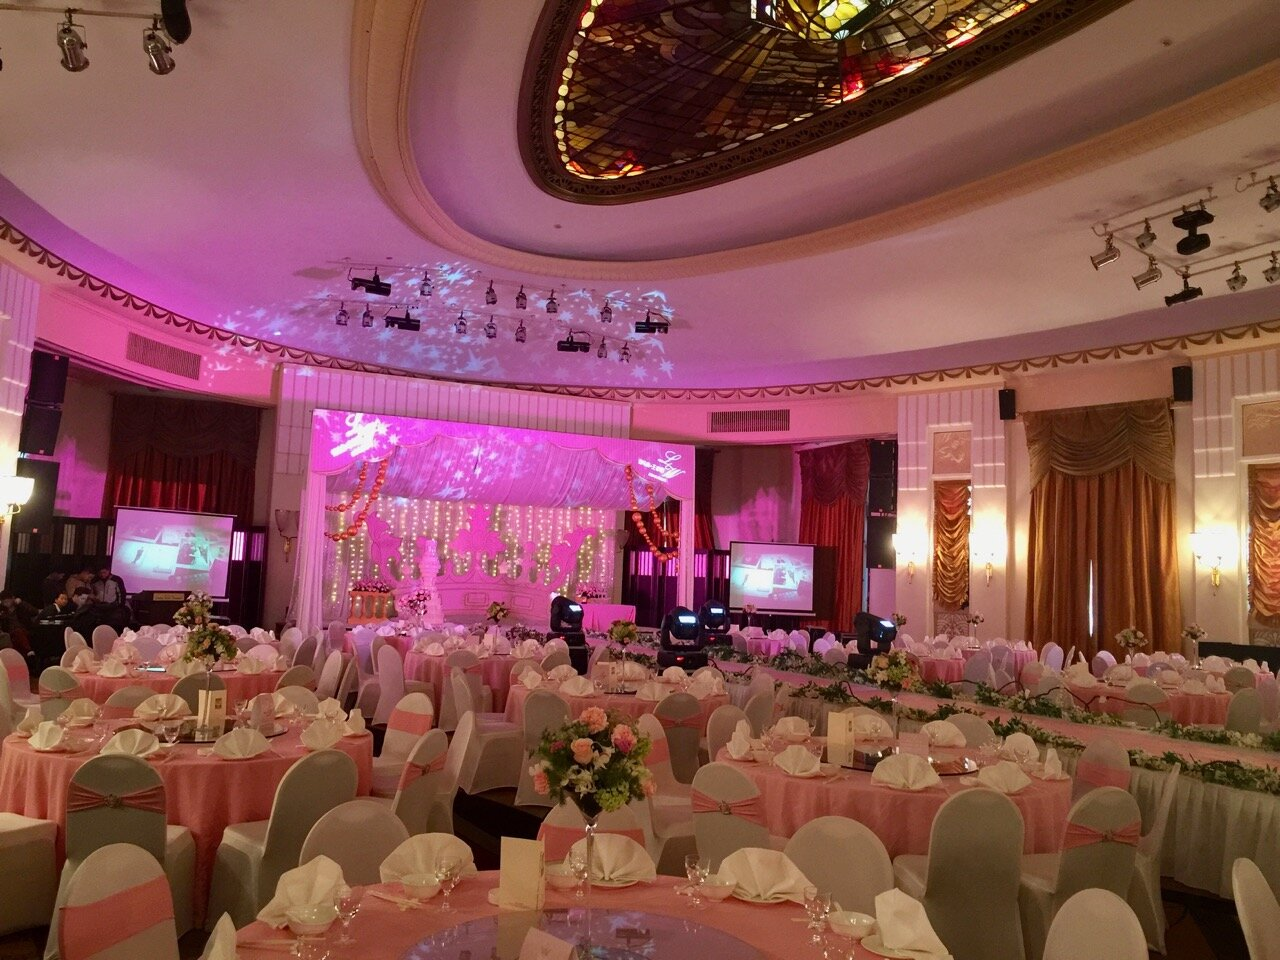 The ballroom is being gussied up for a private wedding party. Unfortunately the original sprung dance floor is hidden by a thick rug.